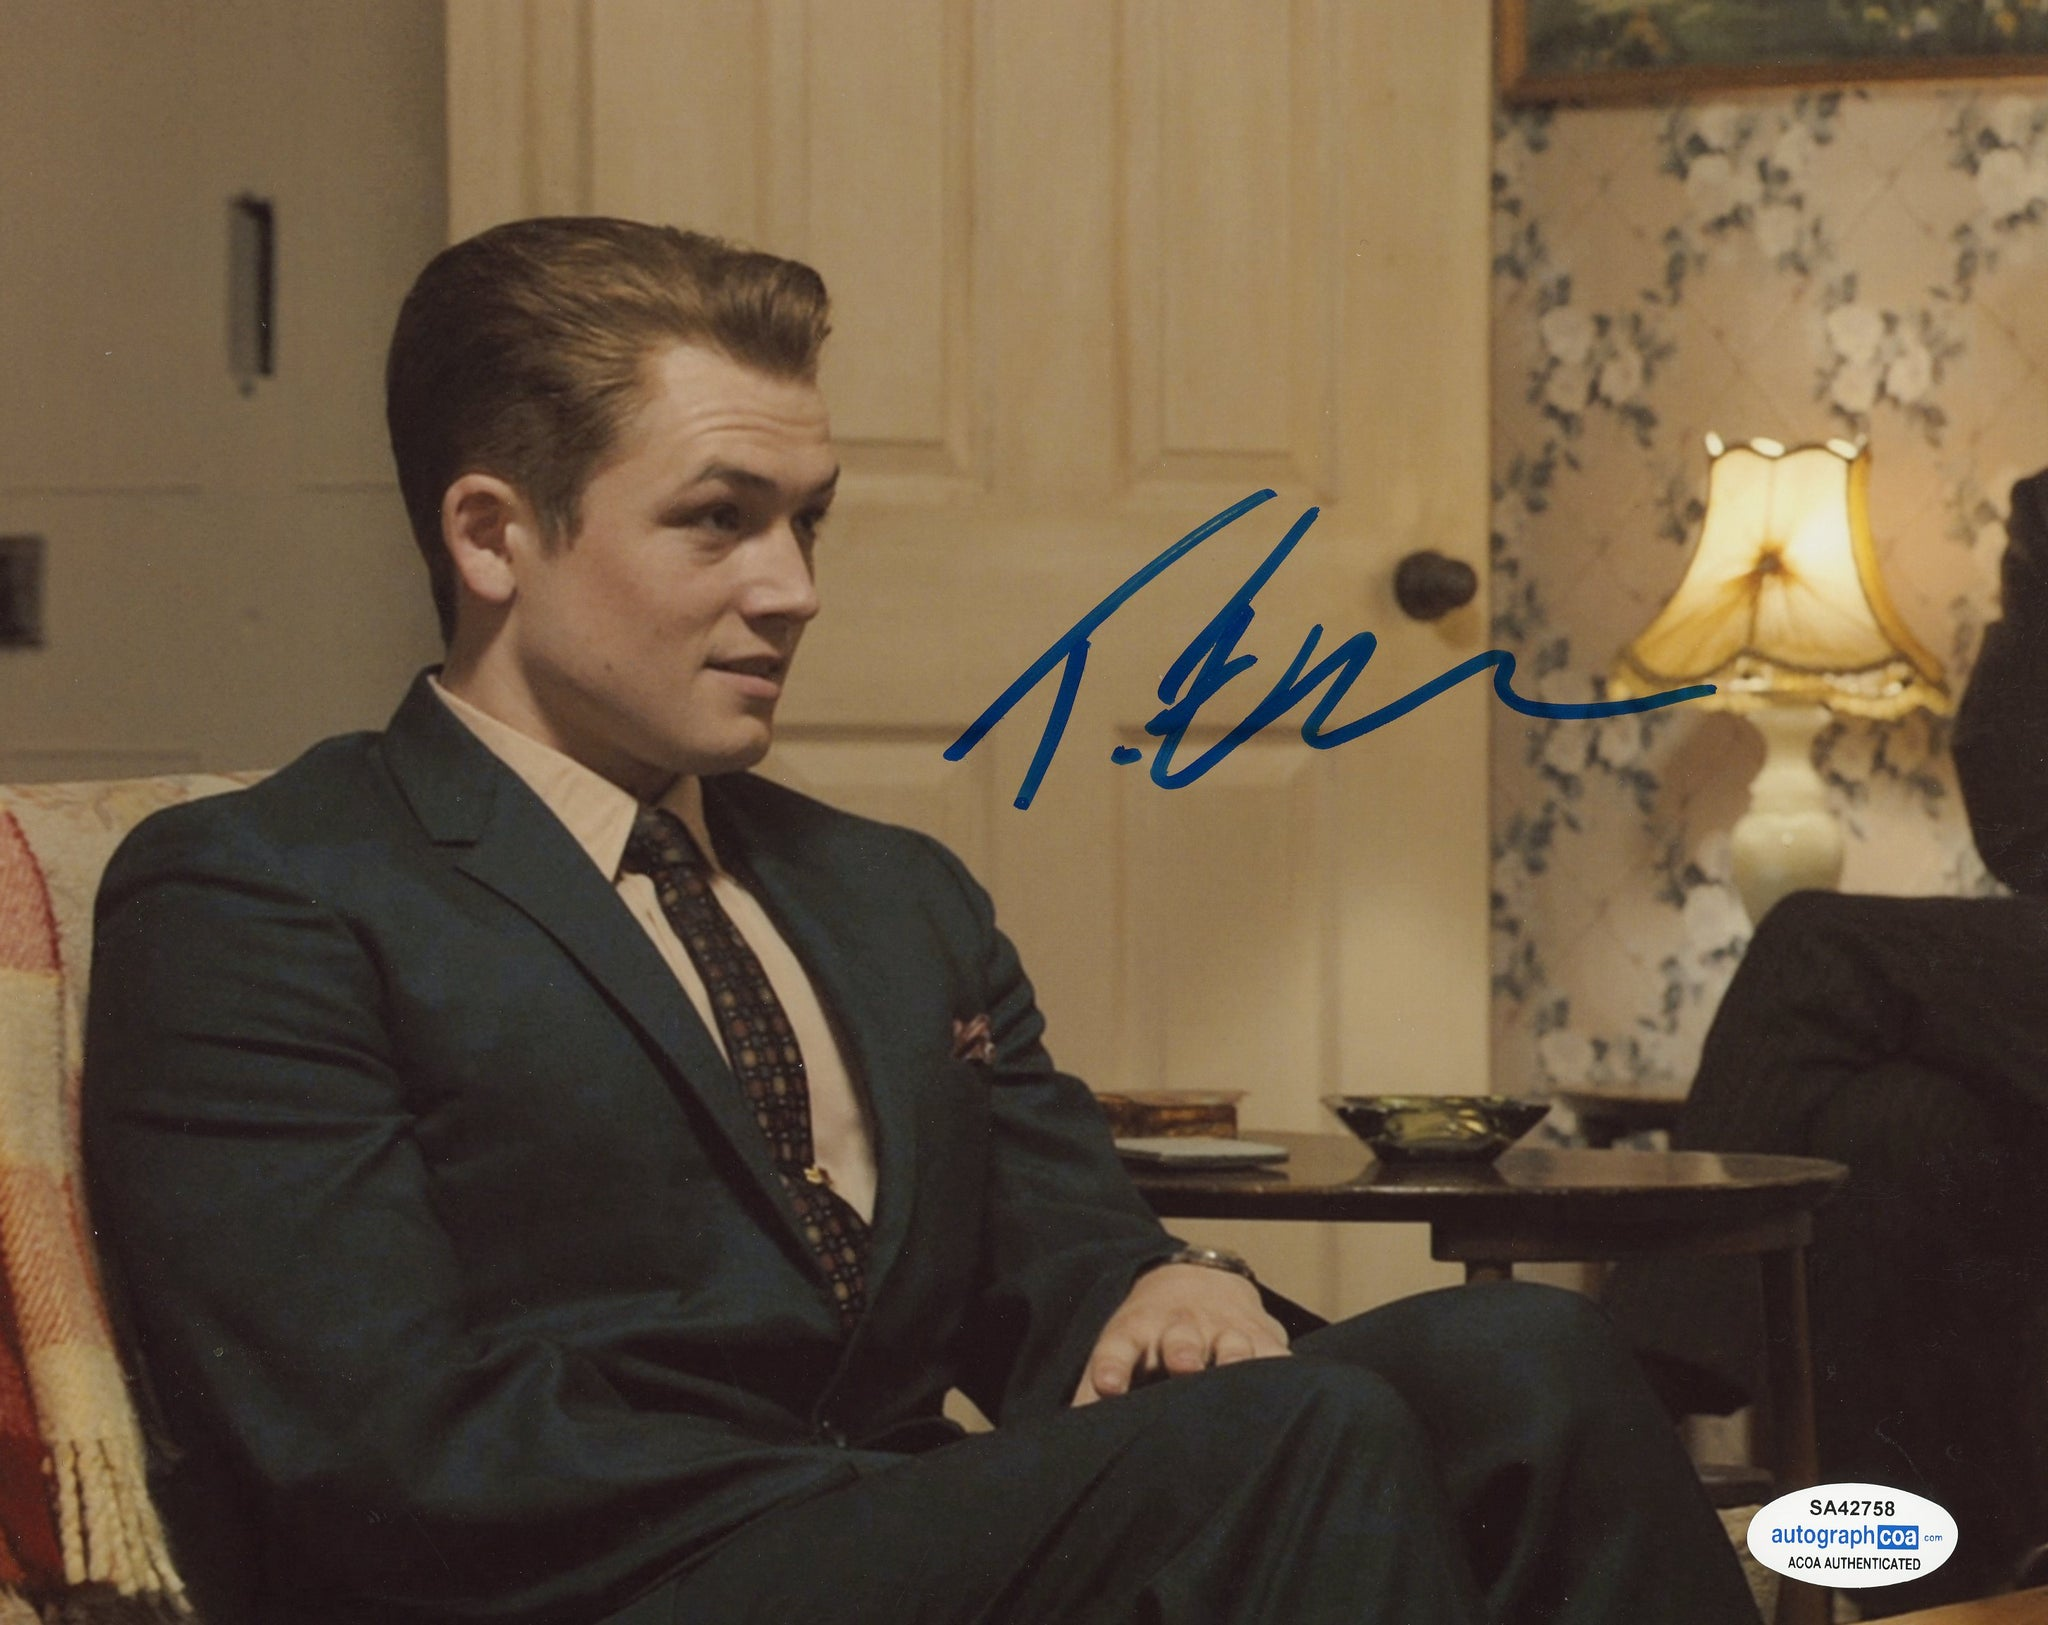 Taron Egerton Legend Signed Autograph 8x10 Photo ACOA #16